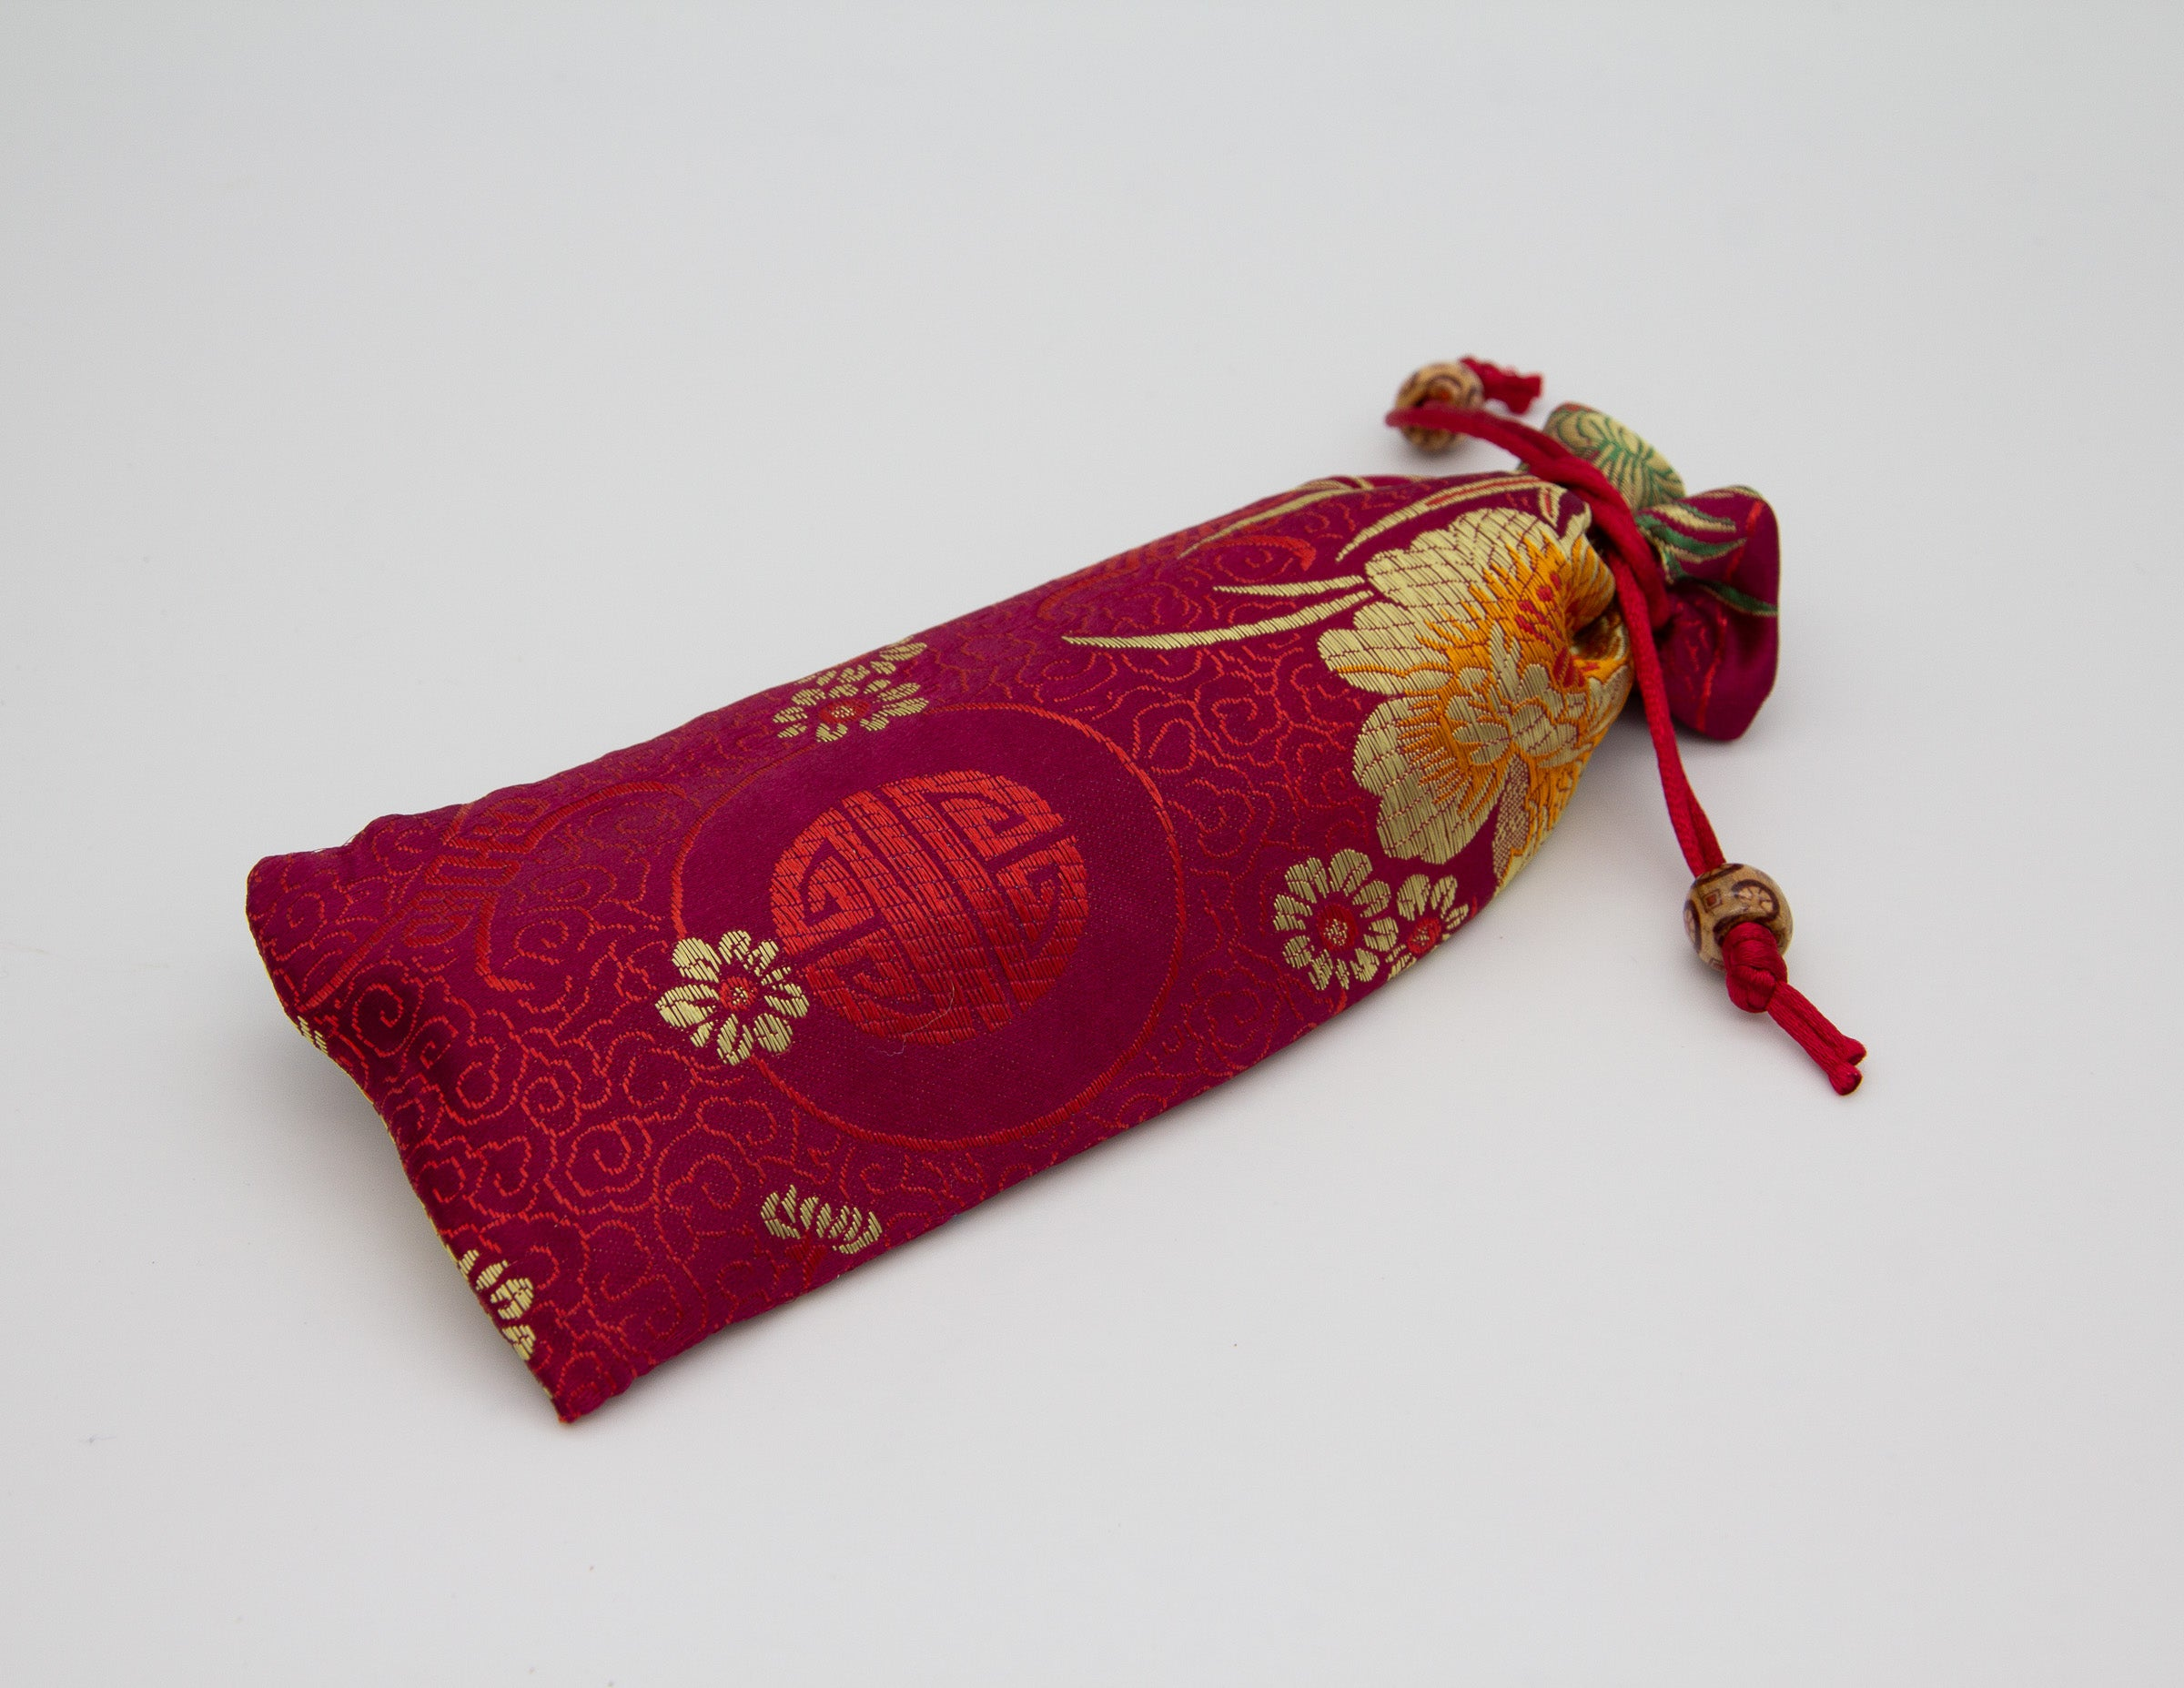 Tengboche Incense in a Bag